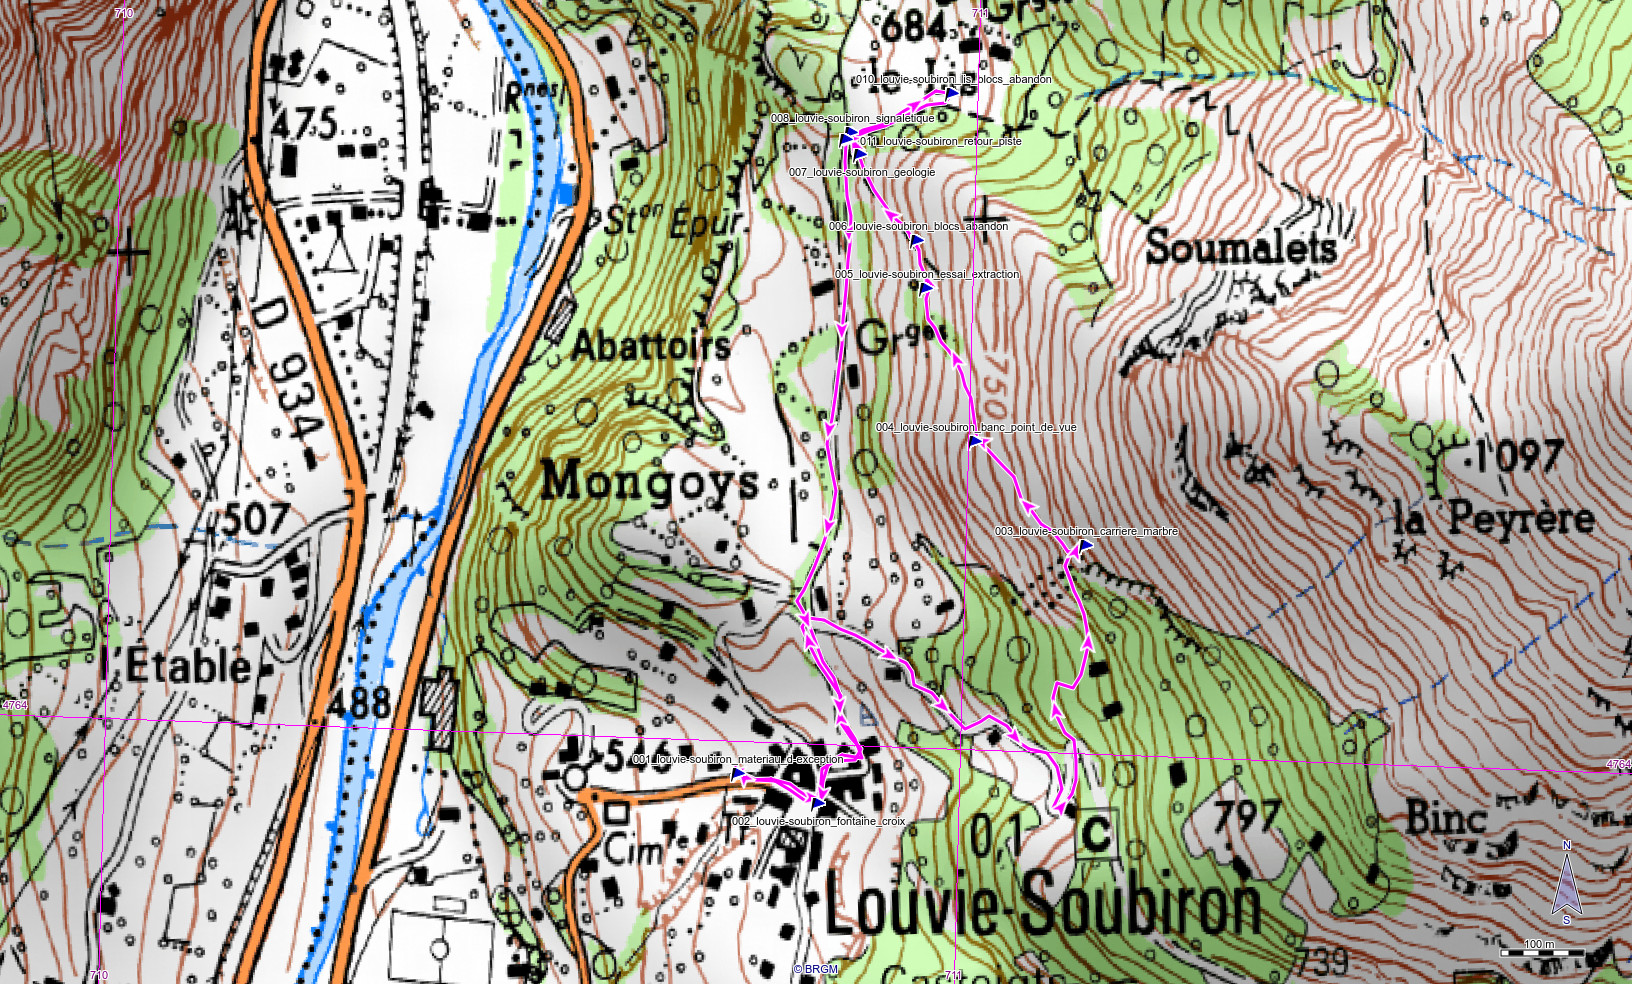 GeolVal 20190316 louvie soubiron carrieres ign